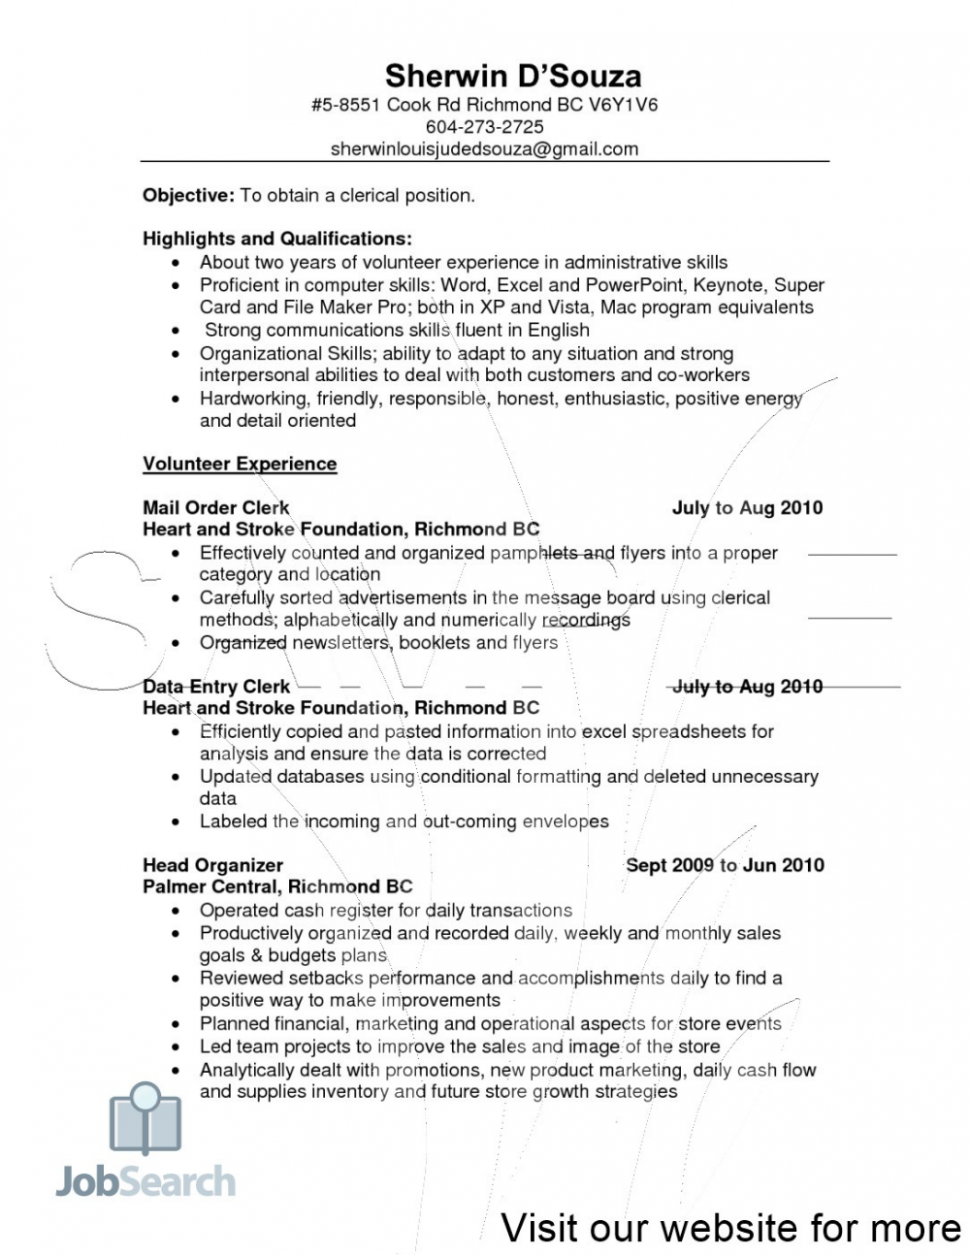 Resume Objective For Any Job Position In 2021 Resume Examples Job Resume Examples Resume Objective